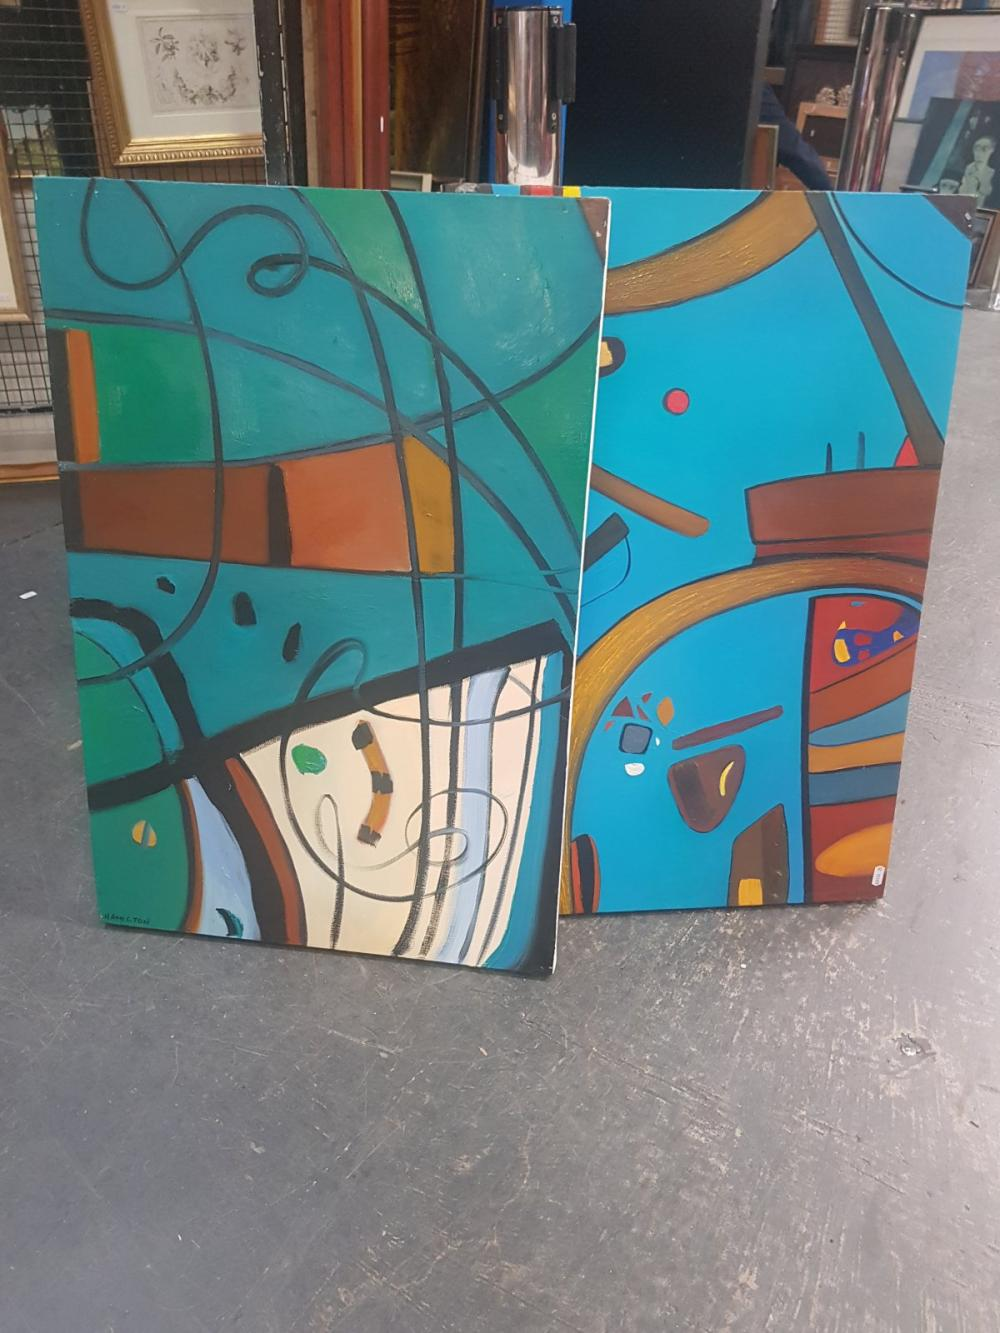 Artist Unknown (2 Works): Sydney Harbour Scenes, acrylic on canvas, 76 x 51cm, each, signed lower